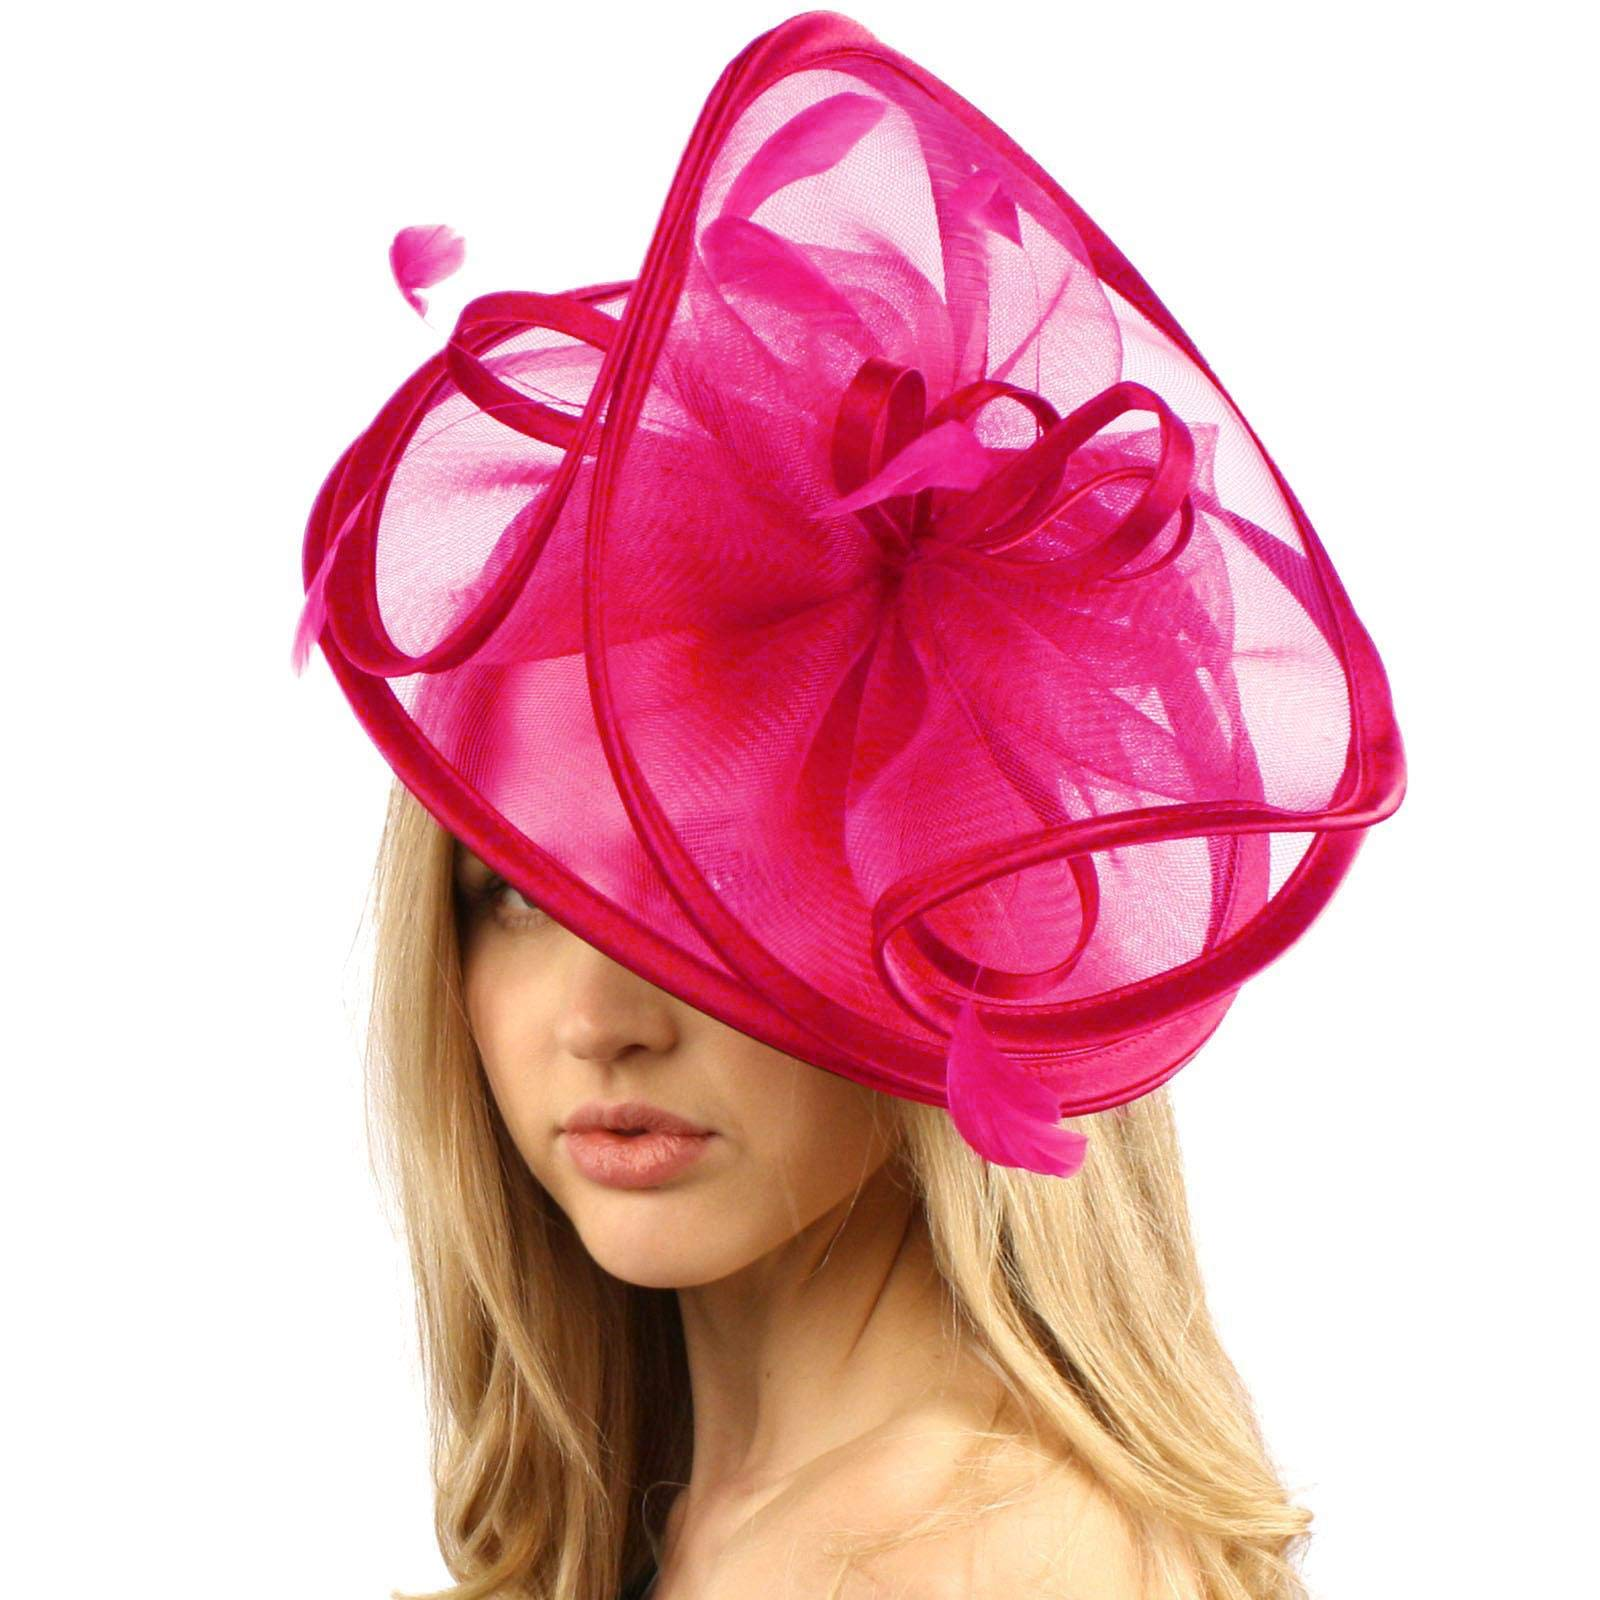 Feathers 3 Tier Layer 2 Tone Headband Fascinator Millinery Cocktail Hat Solid Hot Pink